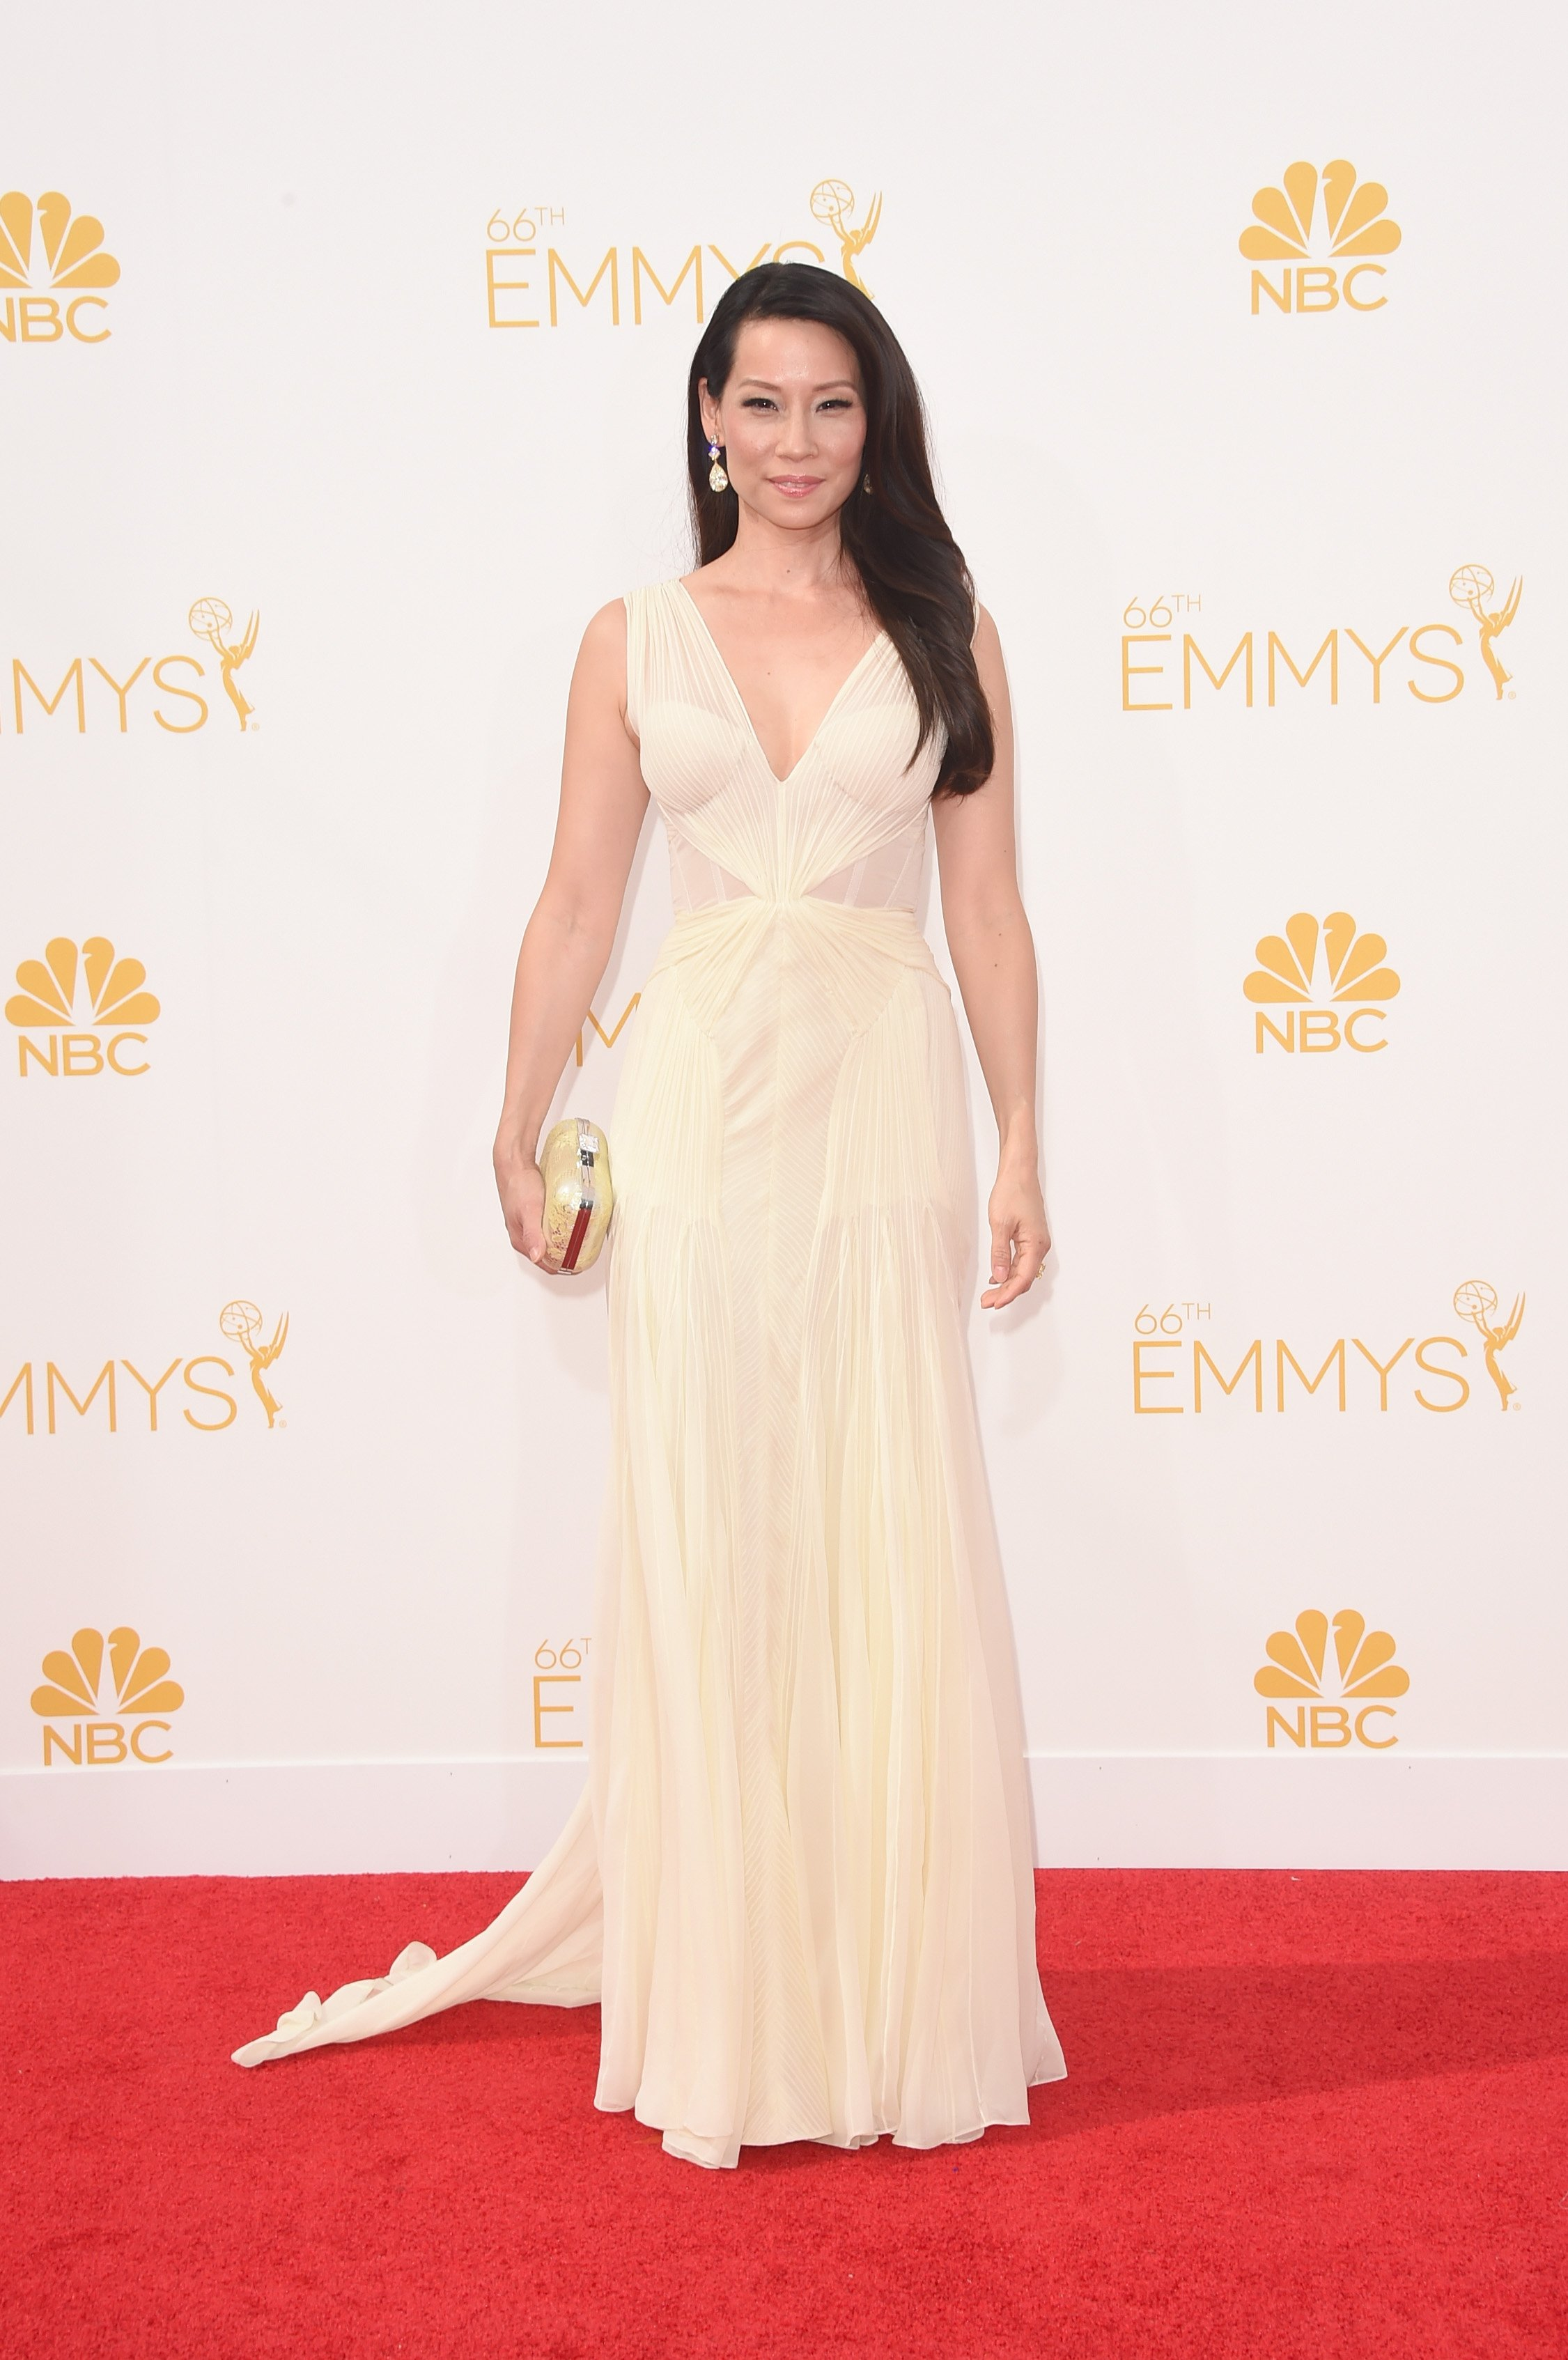 Lucy Liu attends the 66th Annual Primetime Emmy Awards held at Nokia Theatre L.A. Live on August 25, 2014 in Los Angeles, California.